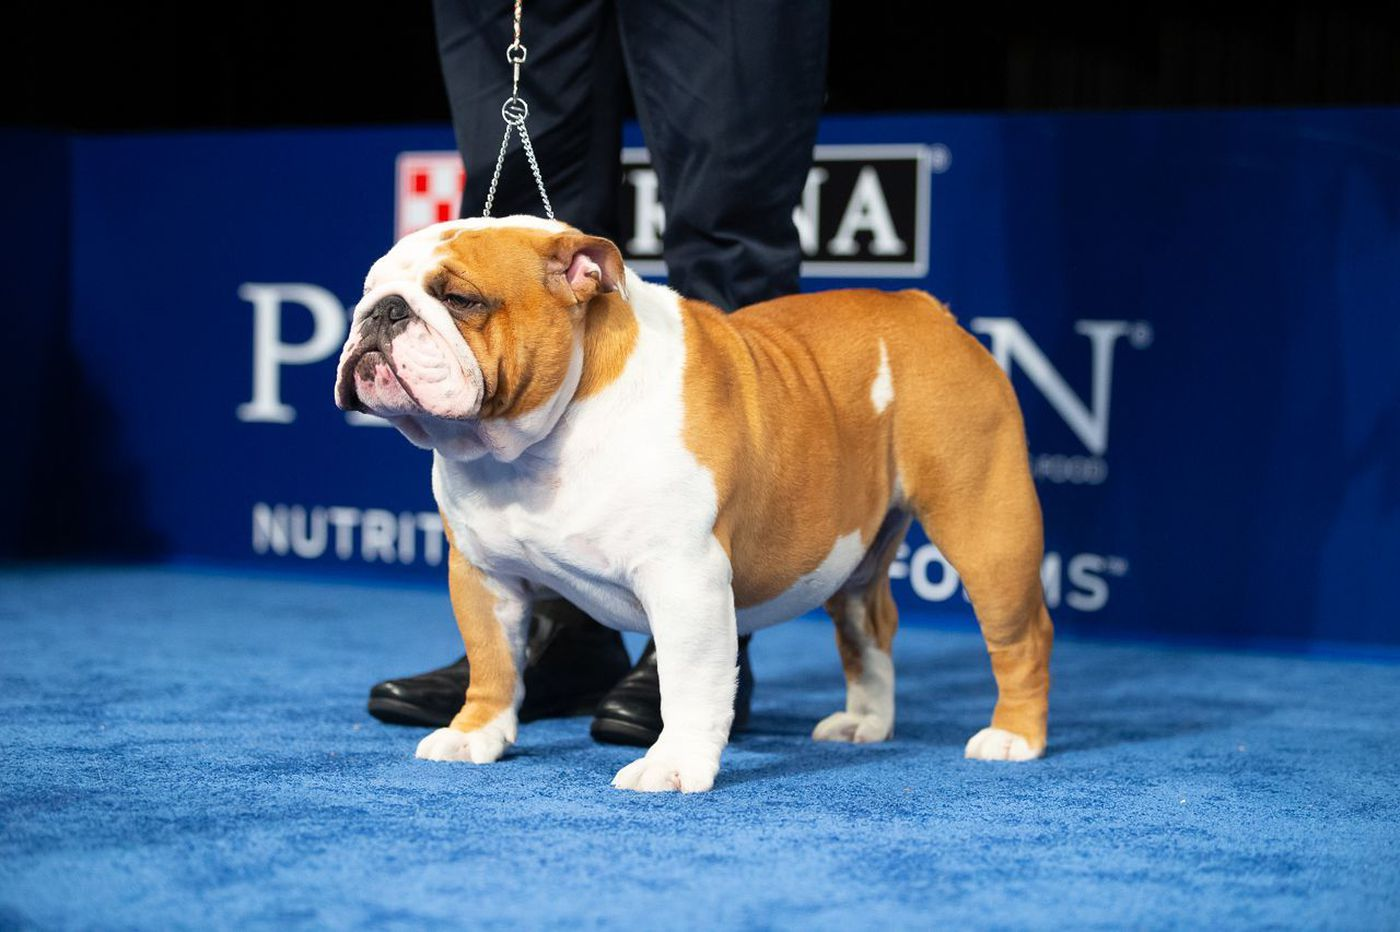 'Thor,' bulldog owned by Philly-area native, is winner of National Dog Show in Philadelphia